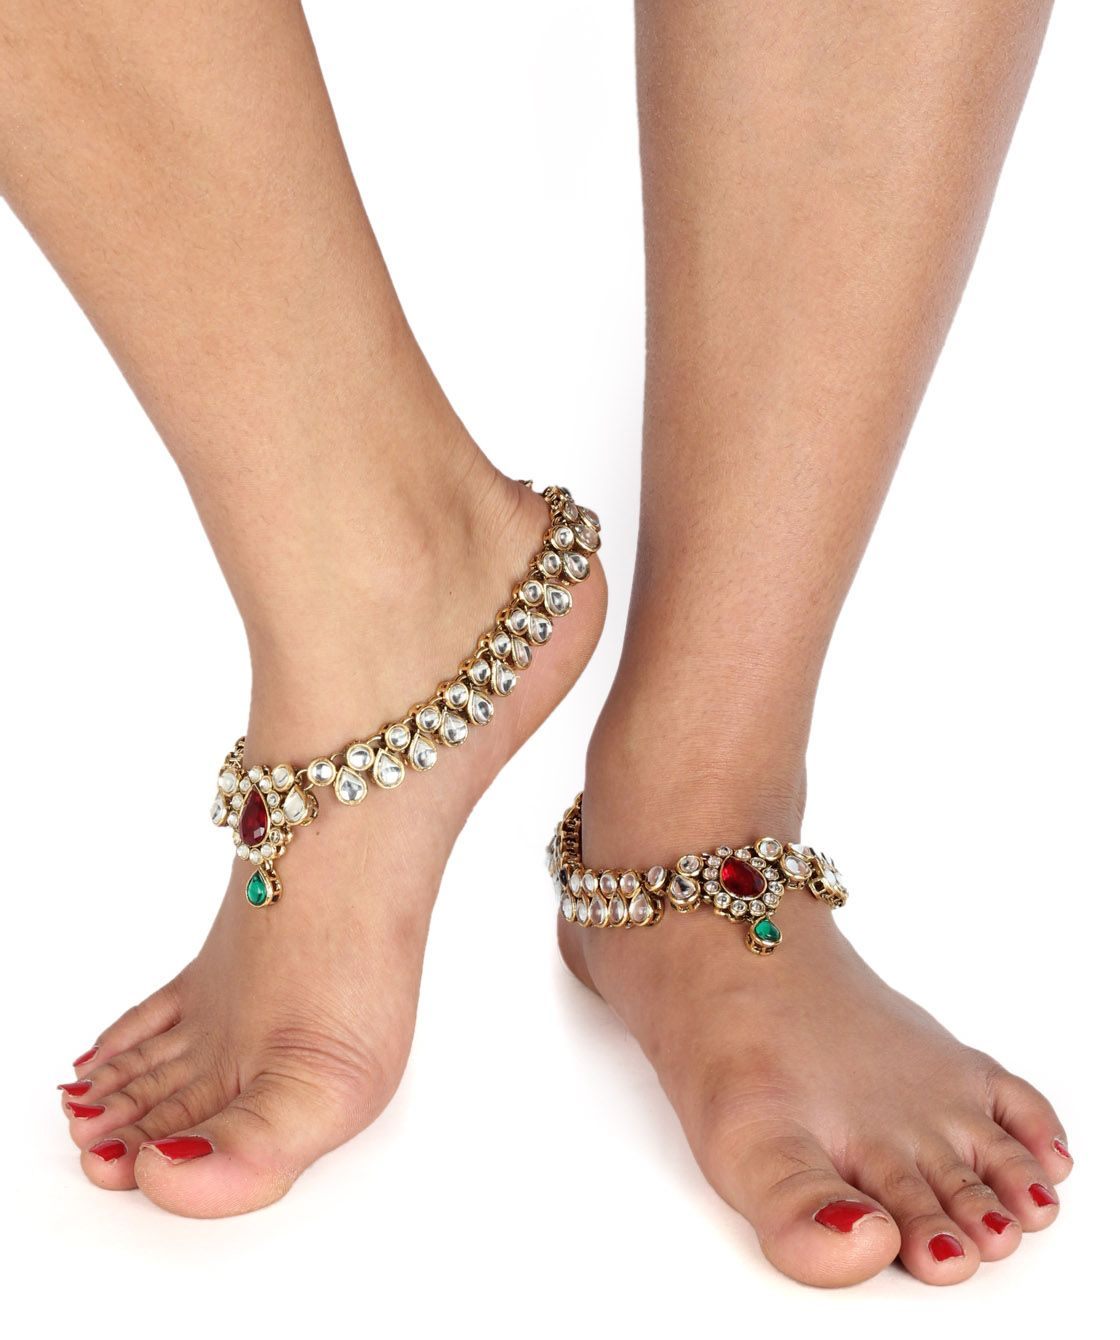 com at by shopping indiatrendshop ribha pin www now anklet indiatrend shop